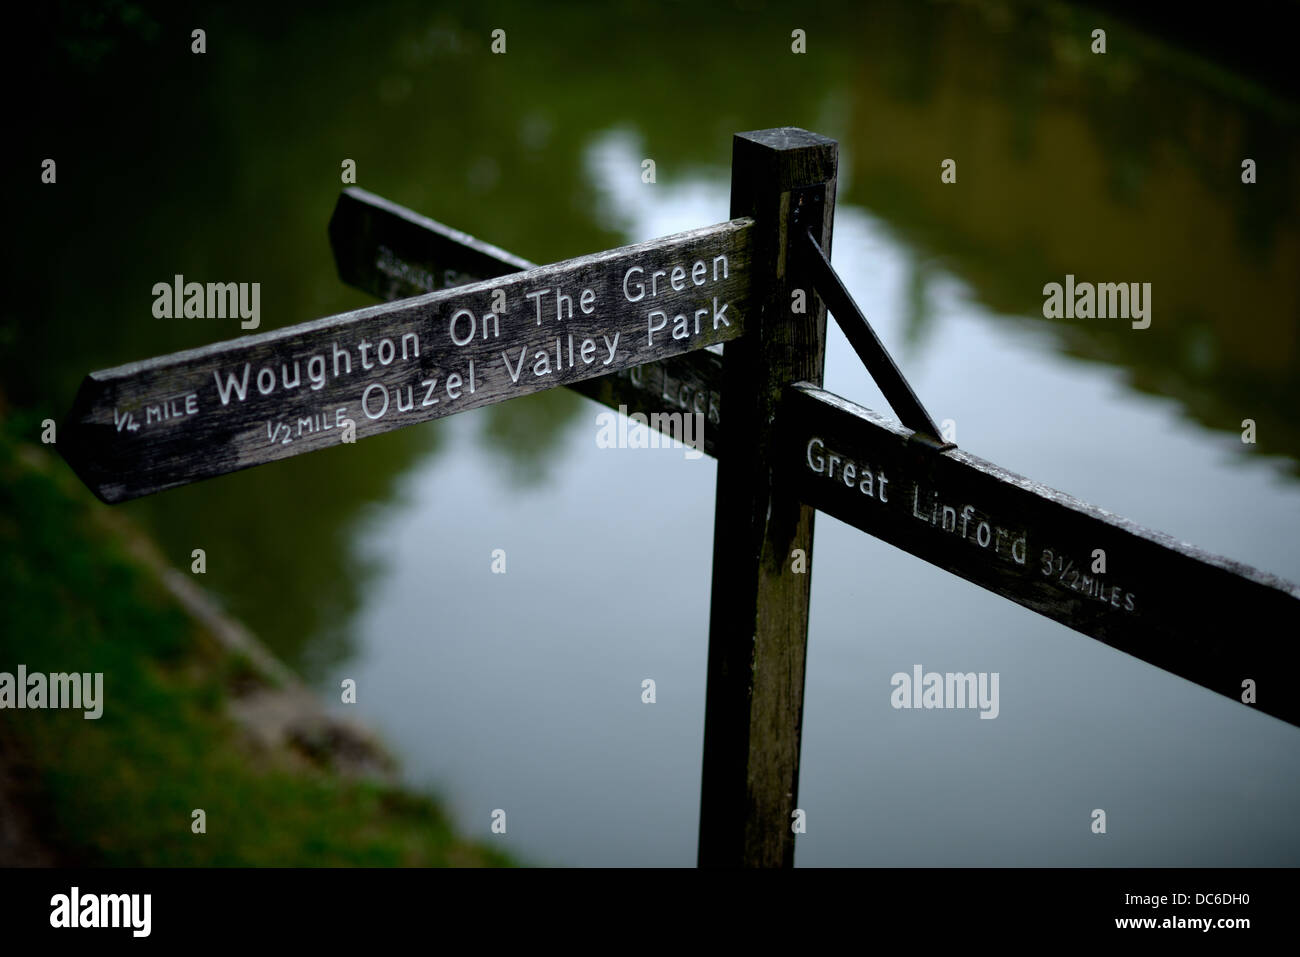 A sign on the towpath of a canal waterway - Stock Image